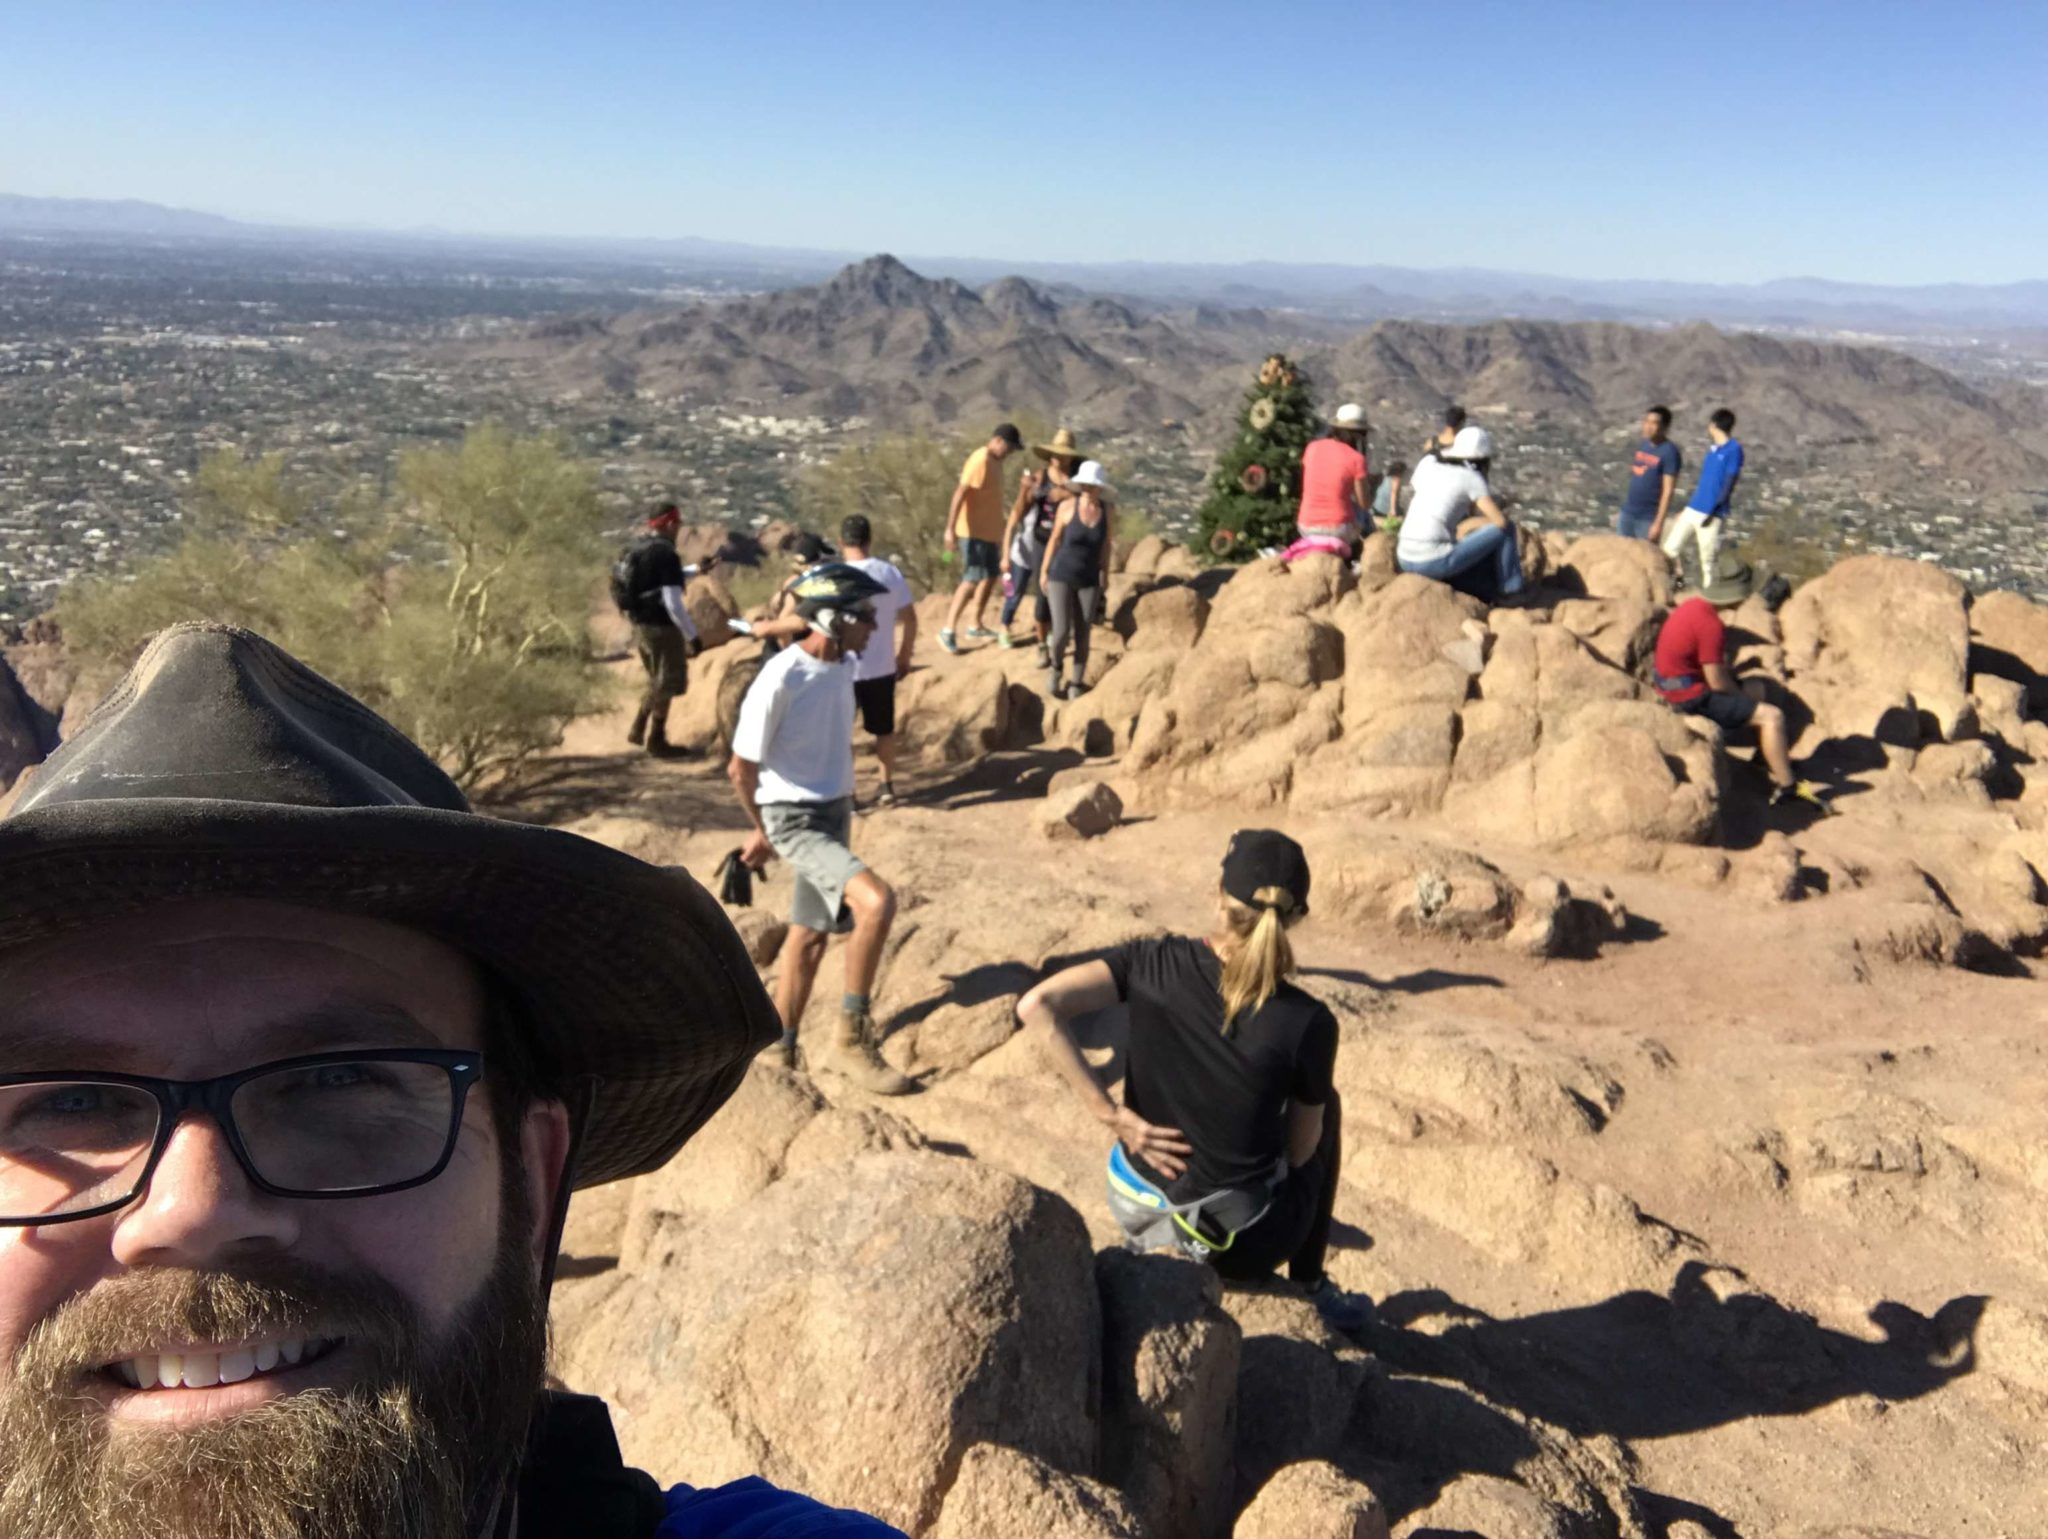 A selfie at the top of Camelback